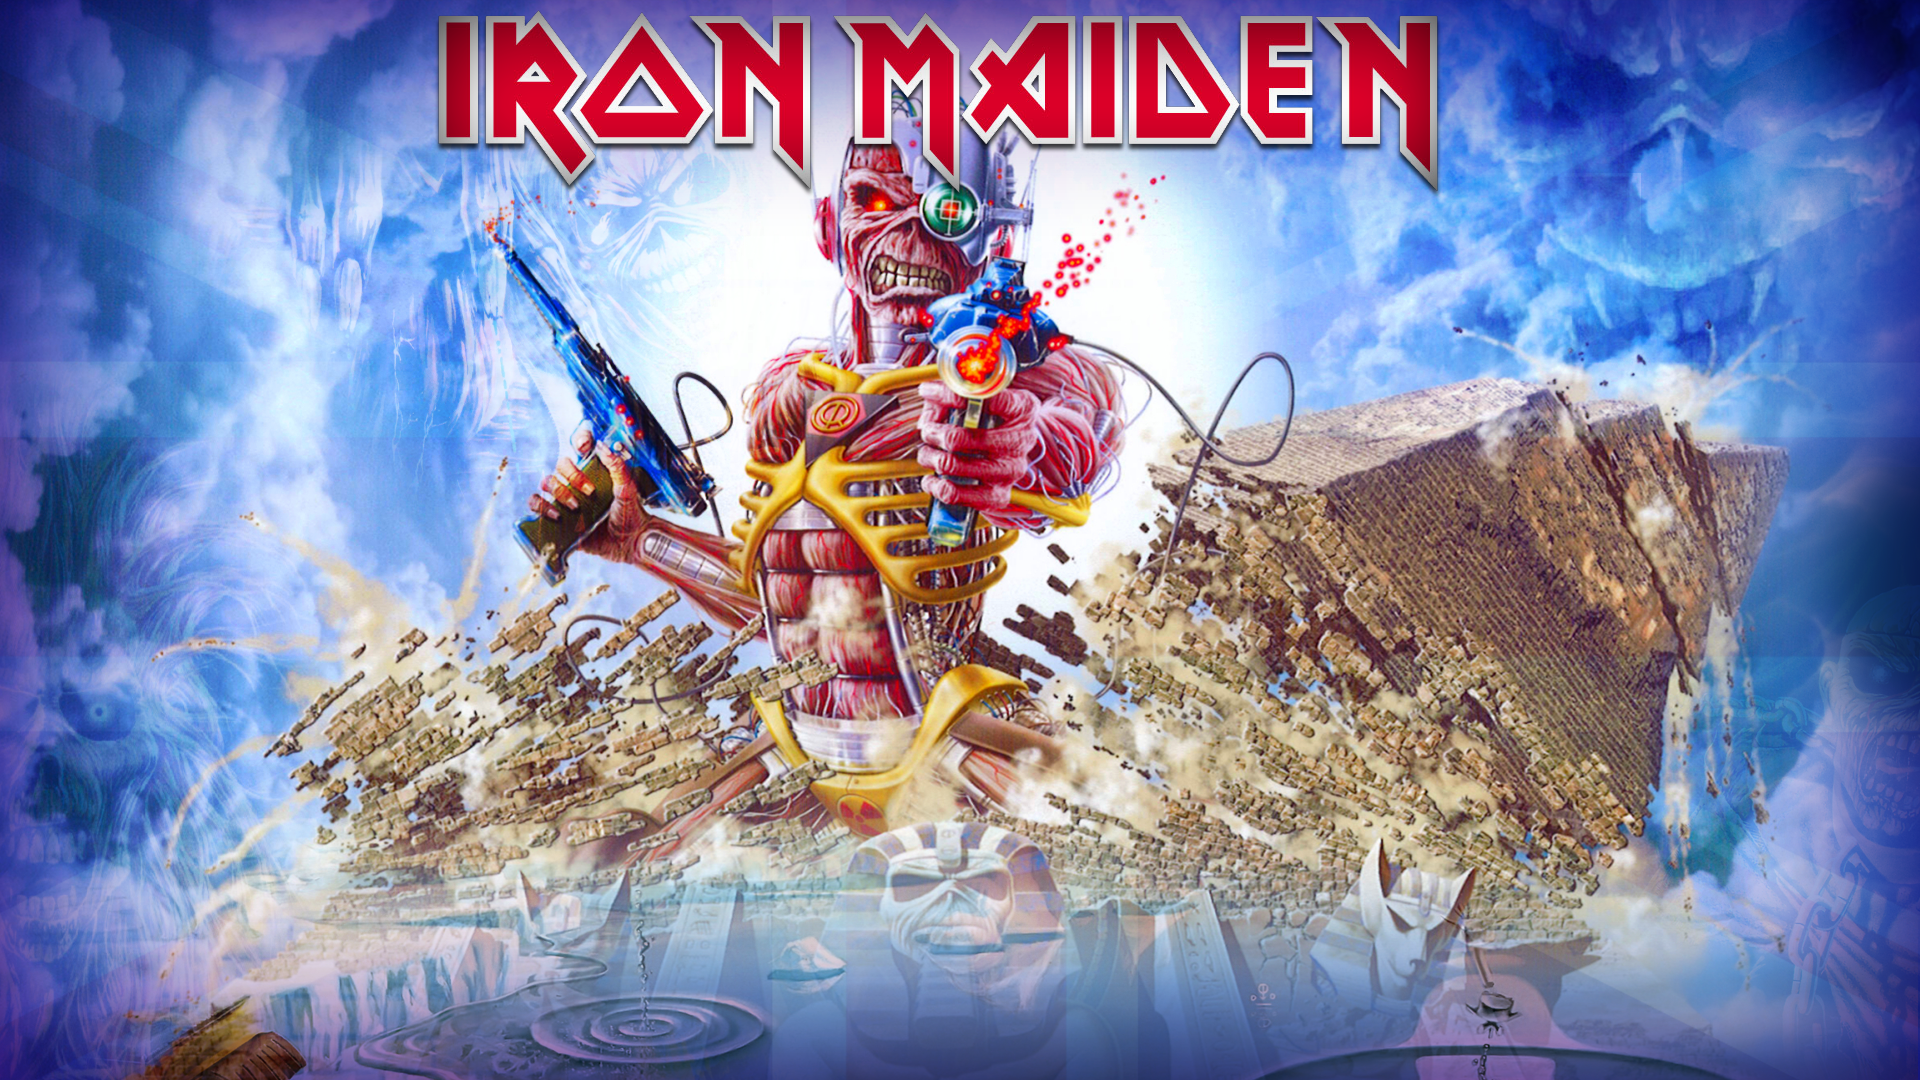 Nature Hd Wallpaper Widescreen 3d Iron Maiden Wallpapers Pictures Images